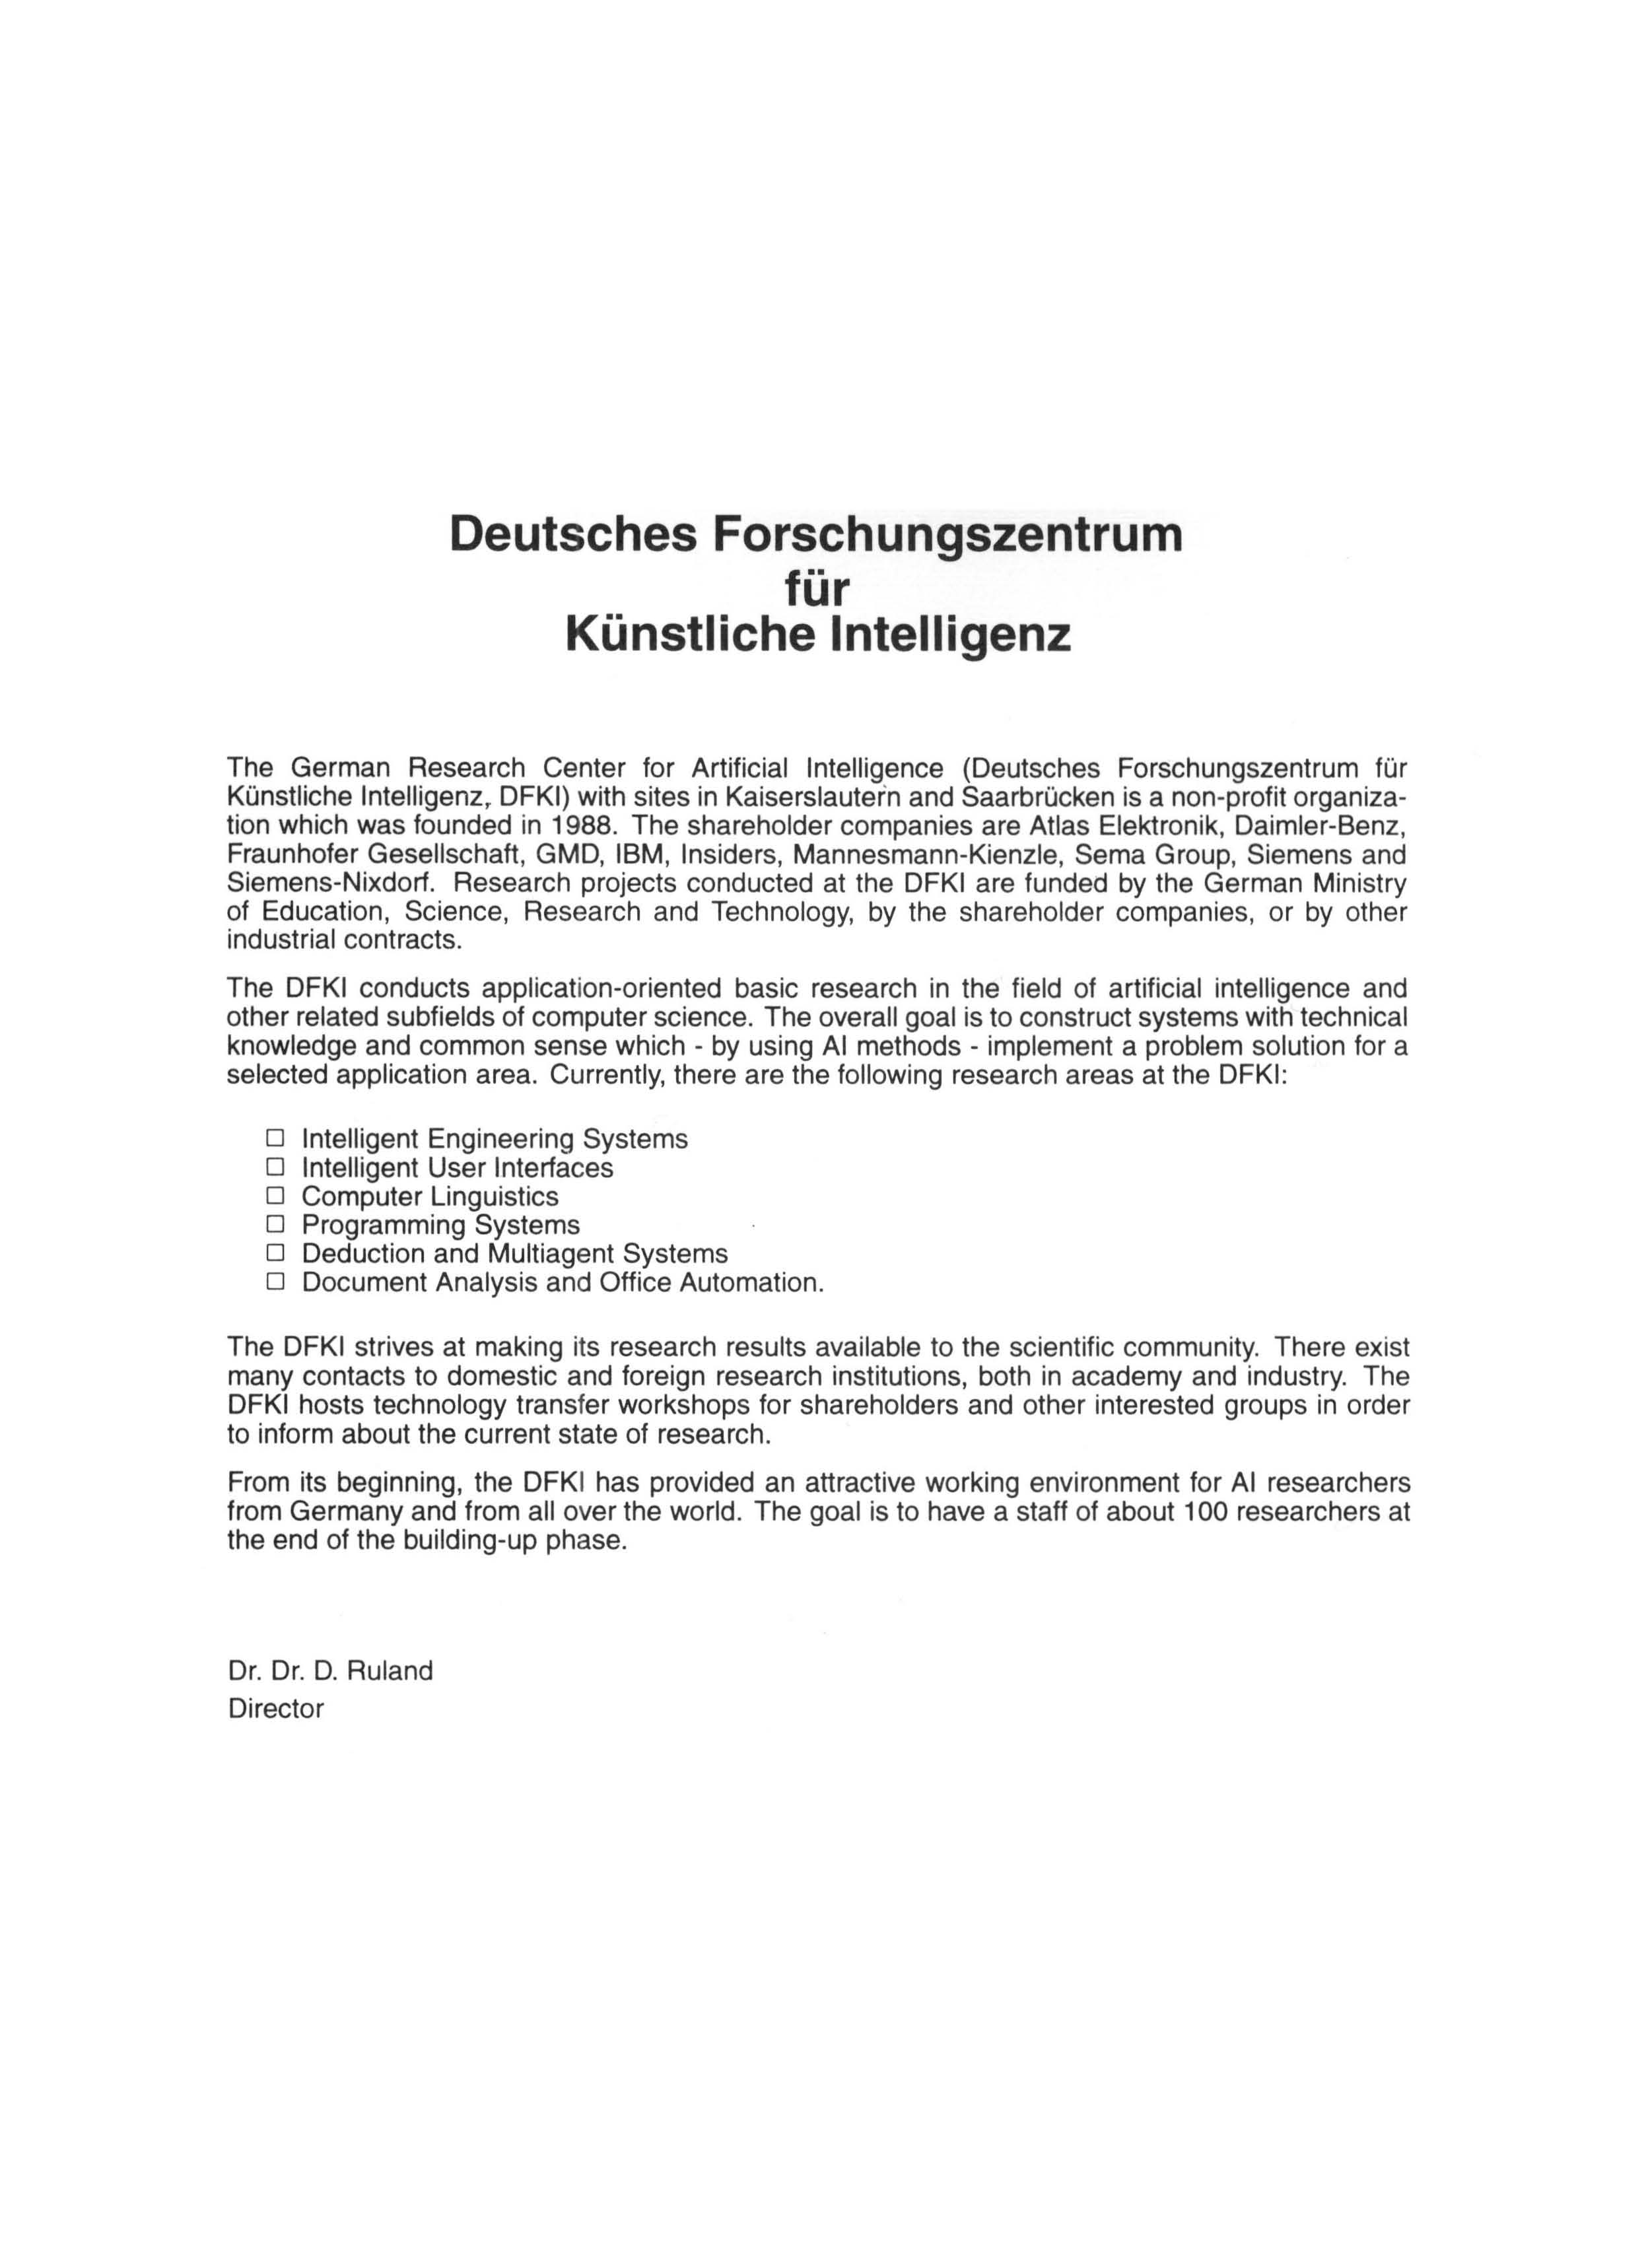 Deutsches Forschungszentrum fur Kunstliche Intelligenz The German Research Center for Artificial Intelligence (Deutsches Forschungszentrum for KOnstliche Intelligenz r DFKI) with sites in